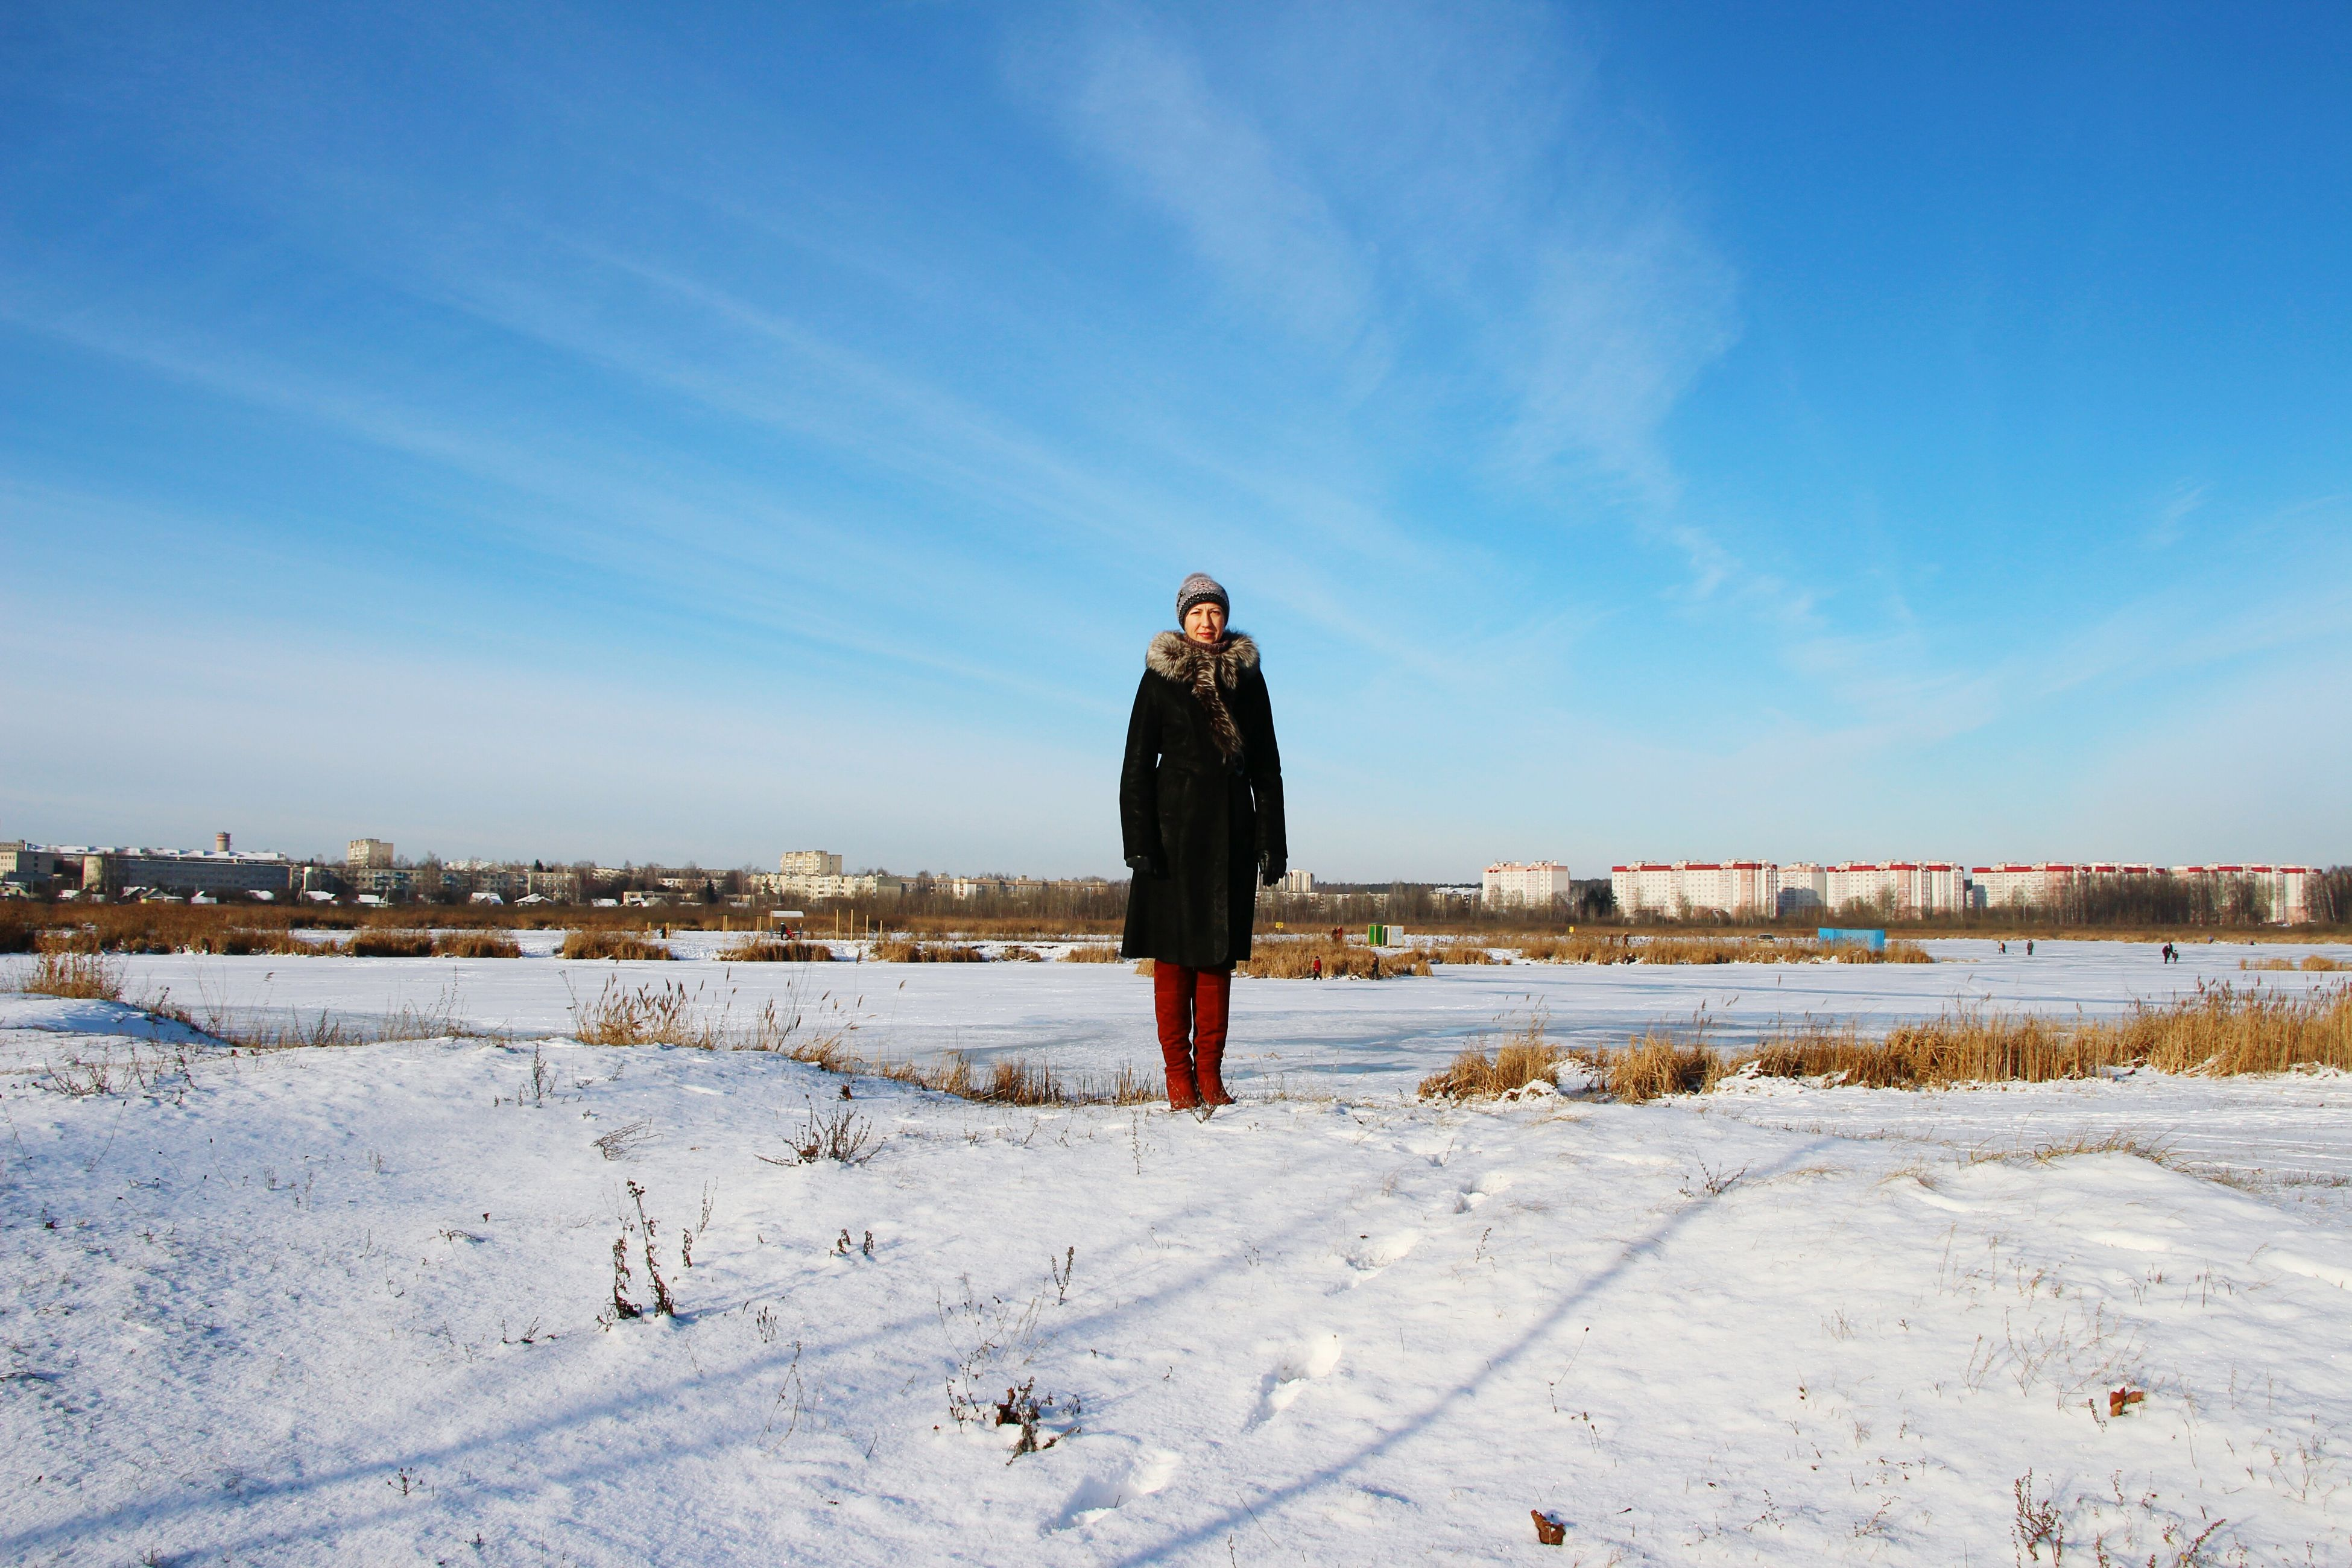 full length, lifestyles, standing, casual clothing, rear view, leisure activity, young adult, sky, built structure, building exterior, young women, walking, architecture, person, blue, front view, warm clothing